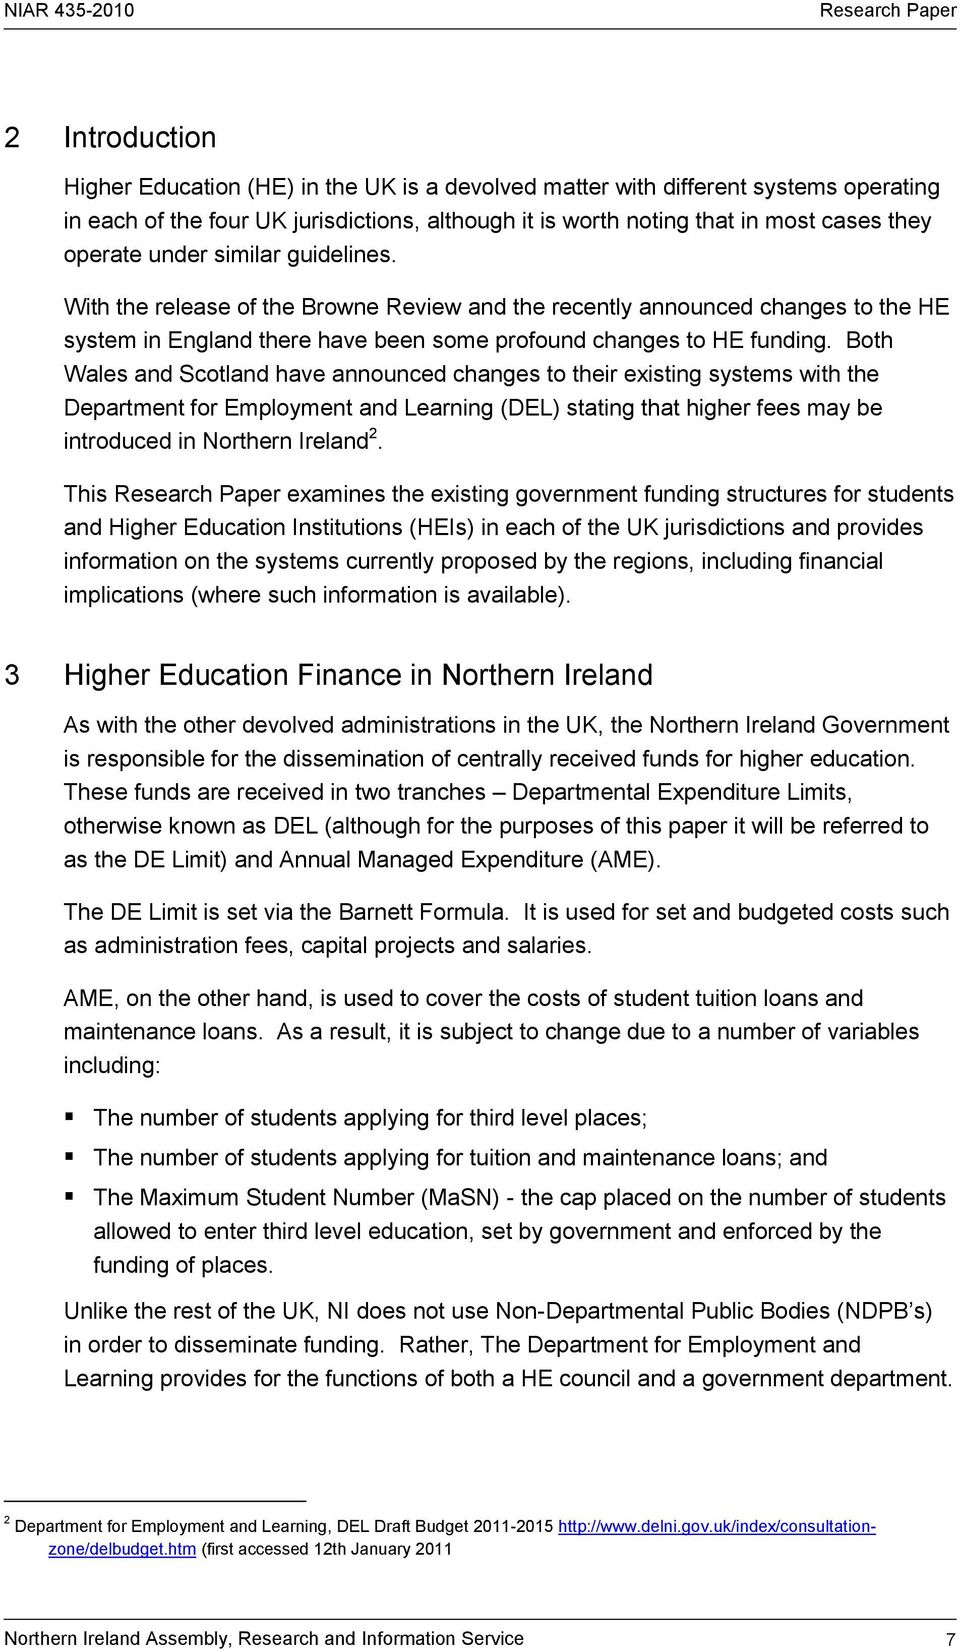 Both Wales and Scotland have announced changes to their existing systems with the Department for Employment and Learning (DEL) stating that higher fees may be introduced in Northern Ireland 2.